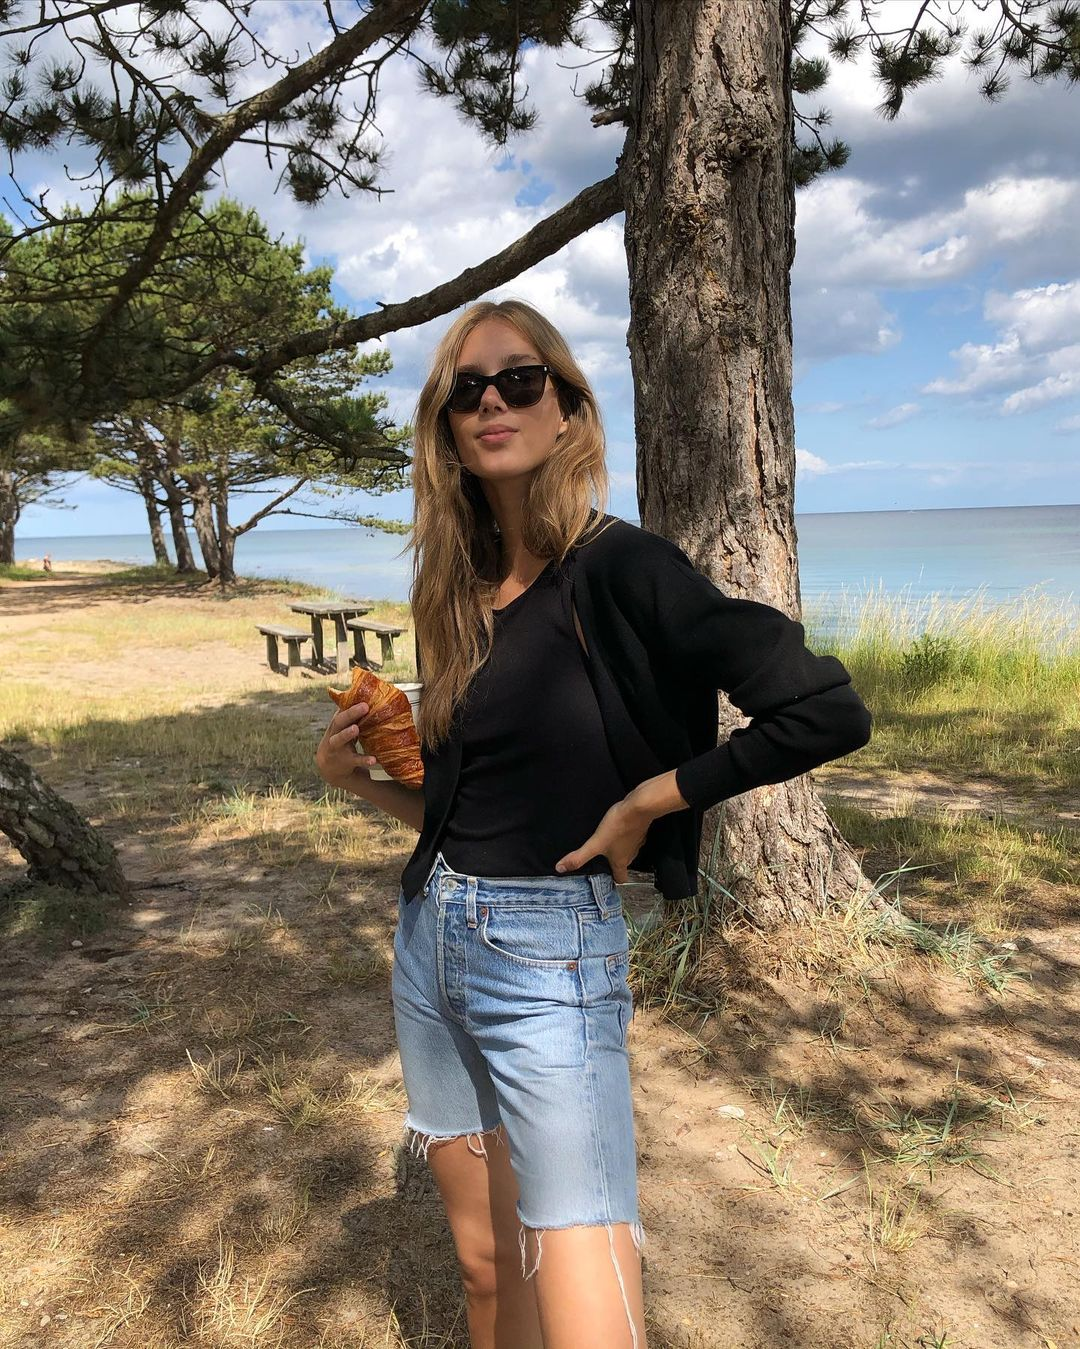 Sacnidnavian Spring Outfit Summer outfit Idea —Cecilie Moosgaard Nielsen in a black tank top, cardigan and long jean shorts